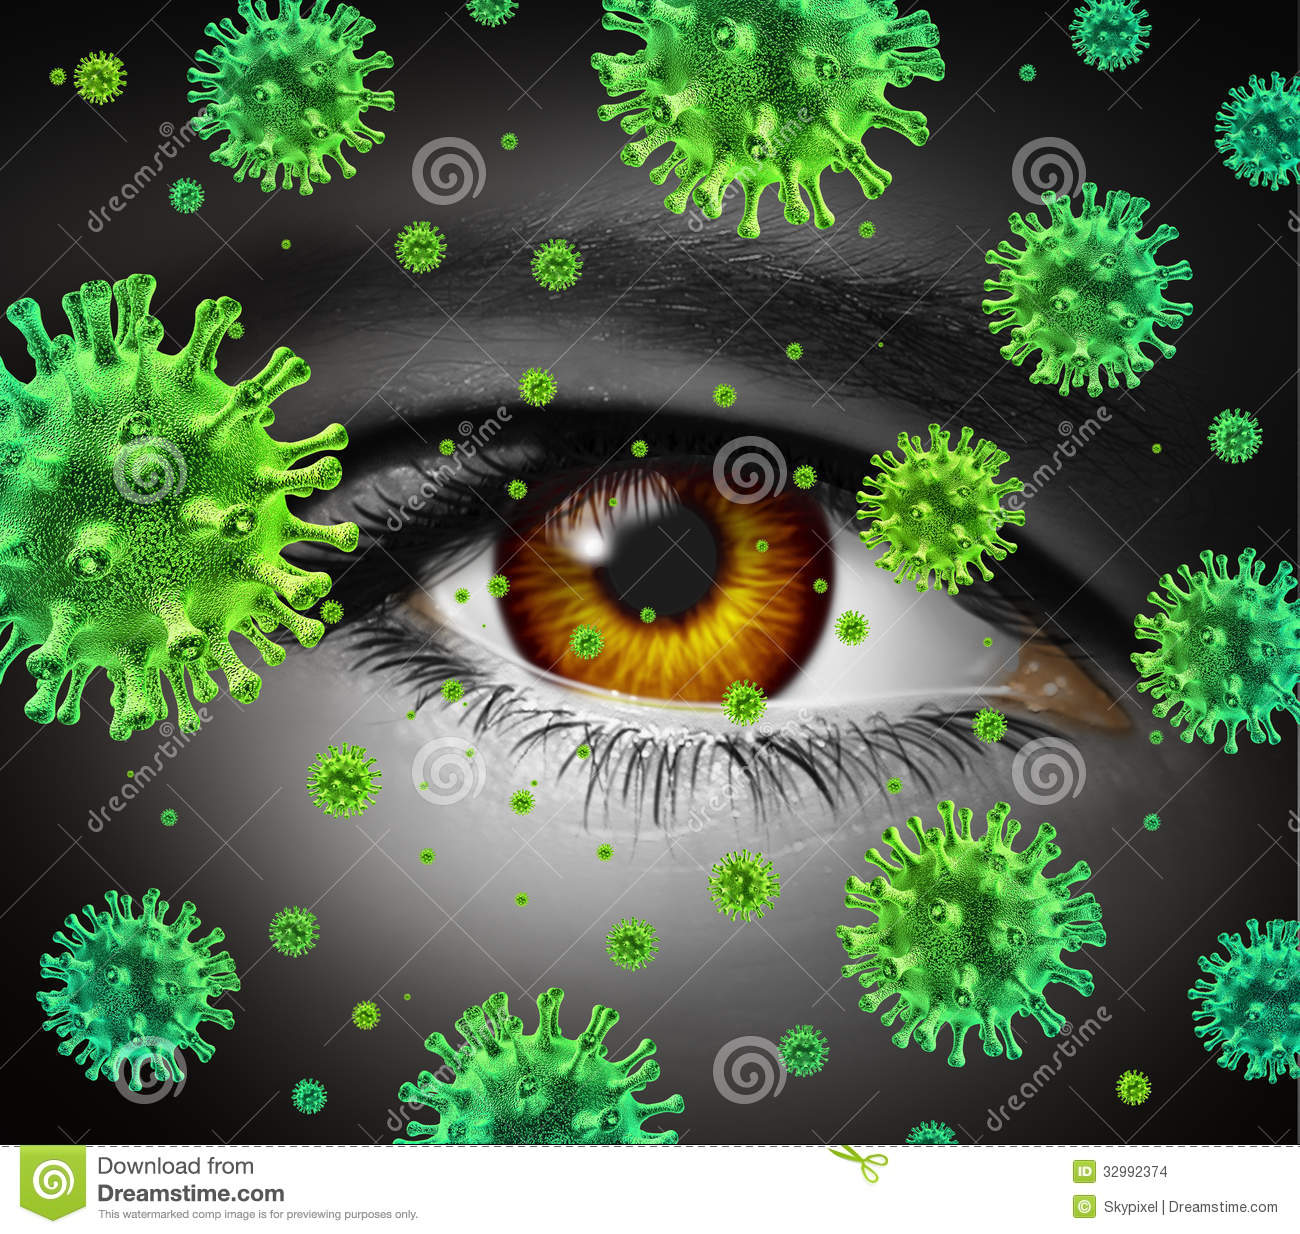 Eye Infection As A Contagious Ocular Disease Transmitting A Virus With